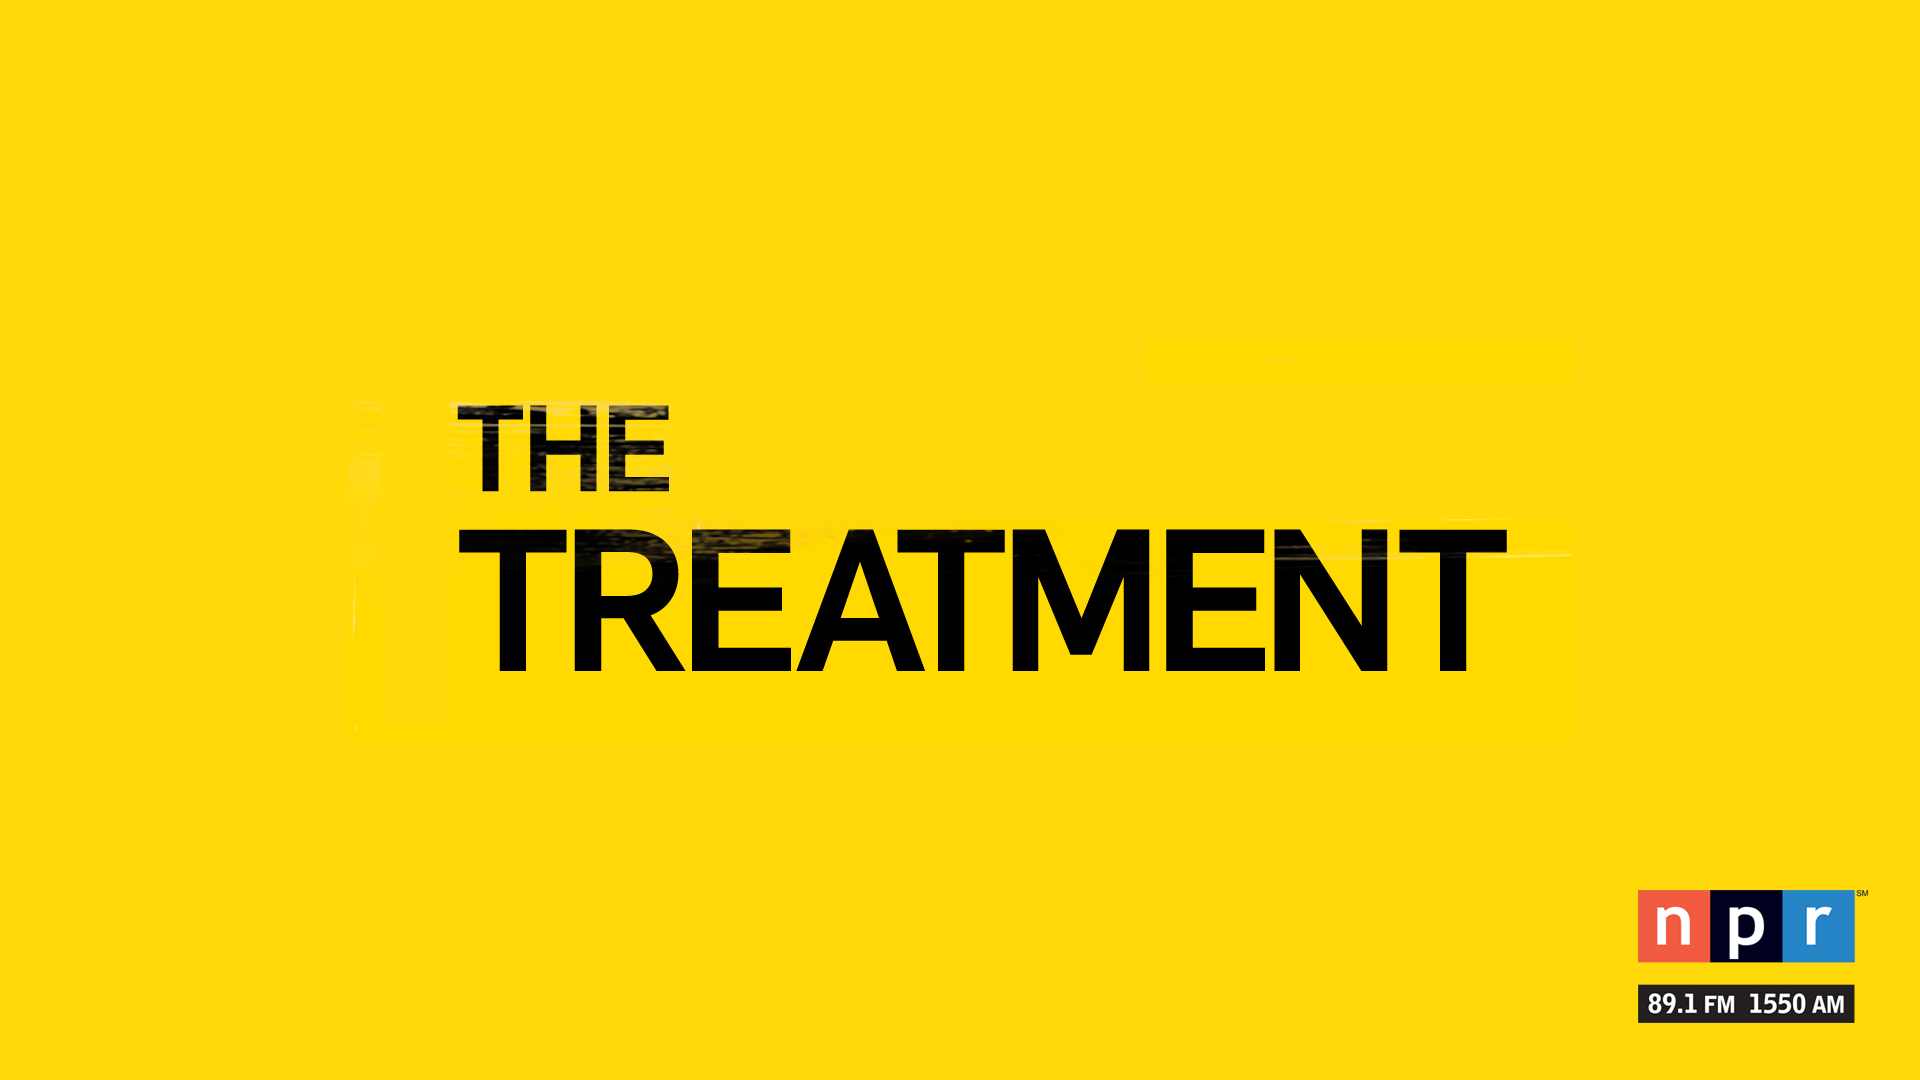 The Treatment airs Saturdays on NPR 89.1.